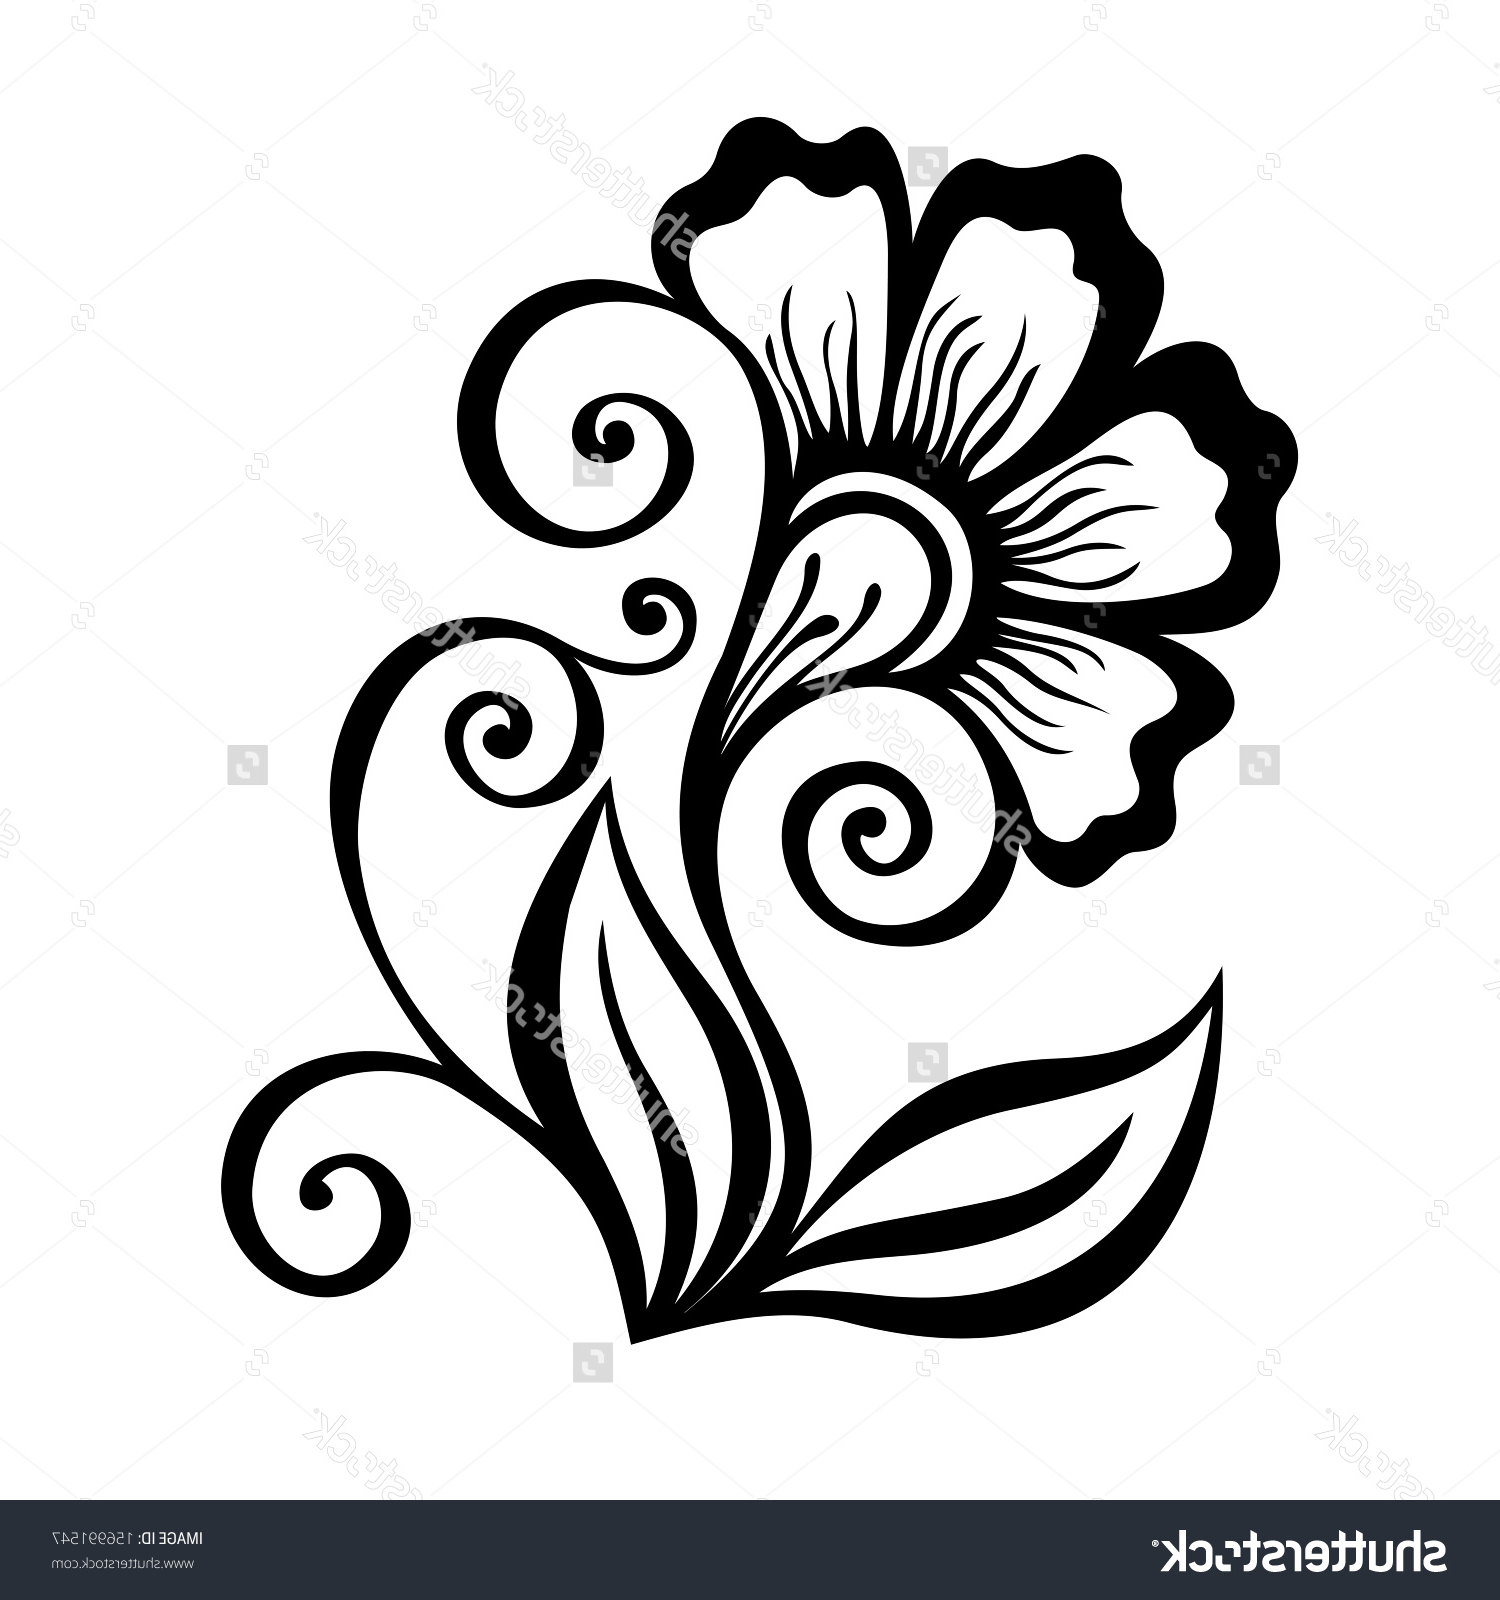 Designs of flowers drawing at getdrawings free for personal 1500x1600 beautiful design of flowers drawing beautiful flower designs to izmirmasajfo